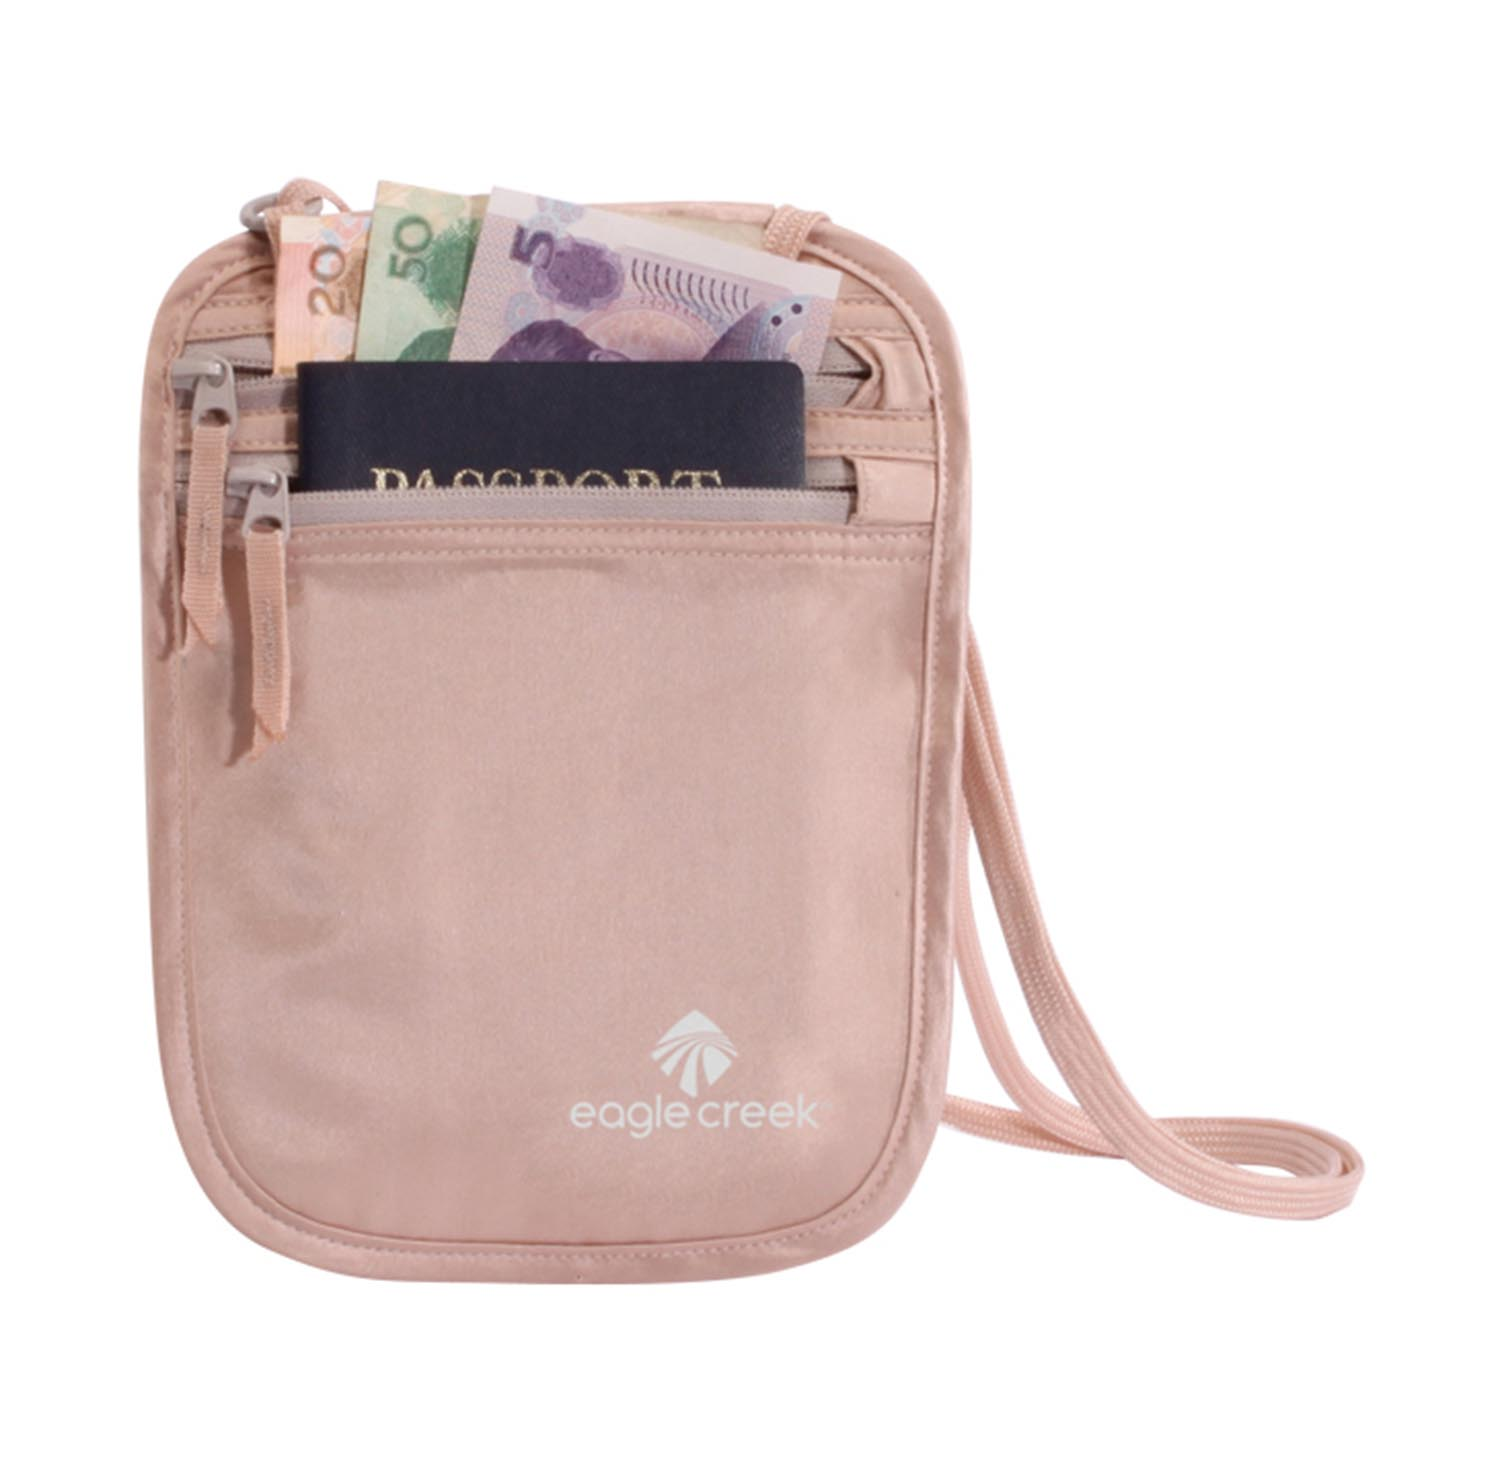 Eagle Creek Silk Undercover Neck Wallet Rose-30